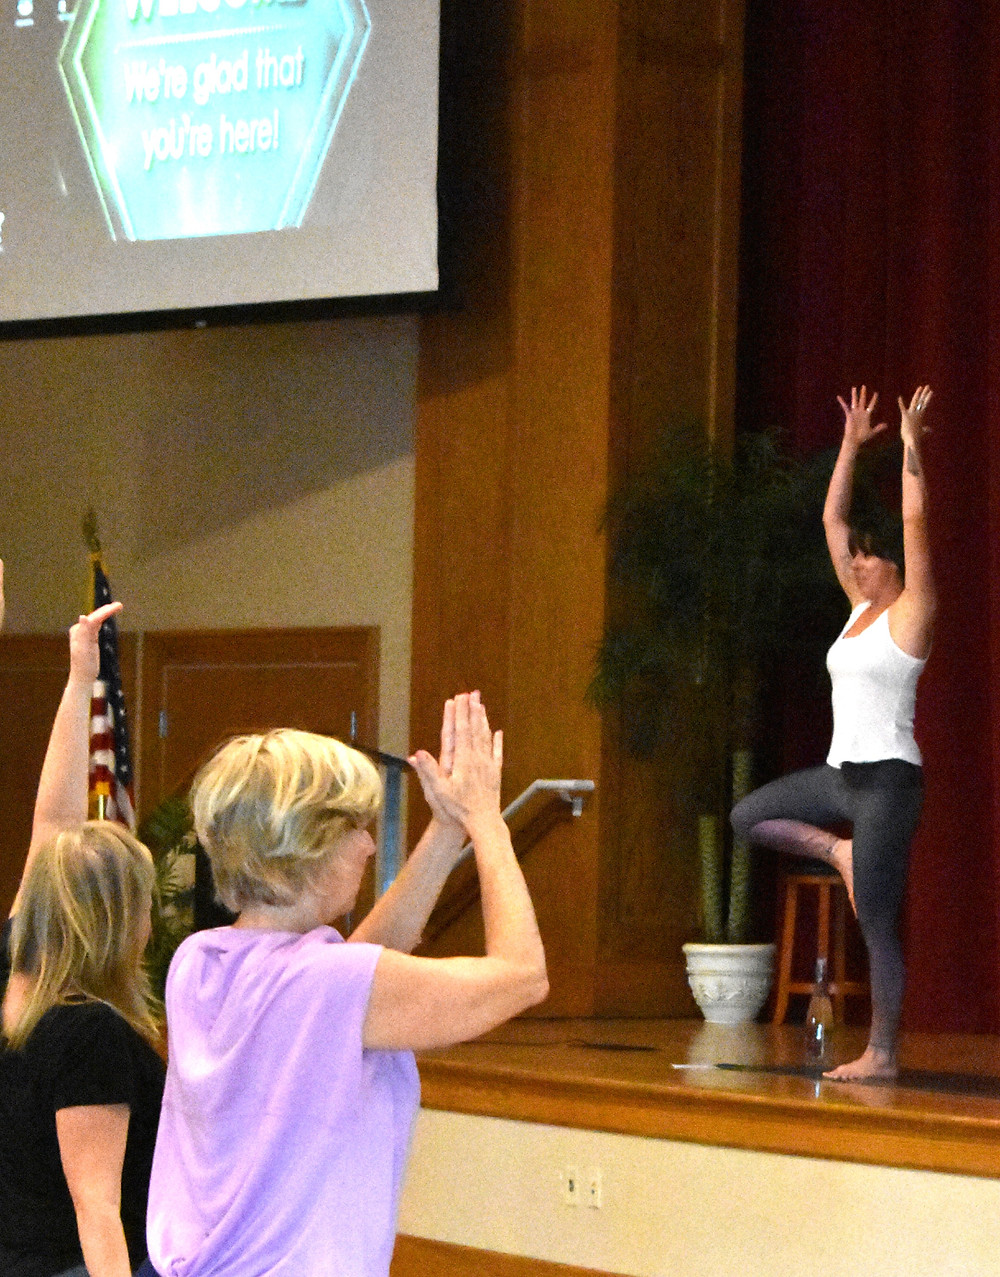 A woman stands on stage, leading a yoga class.